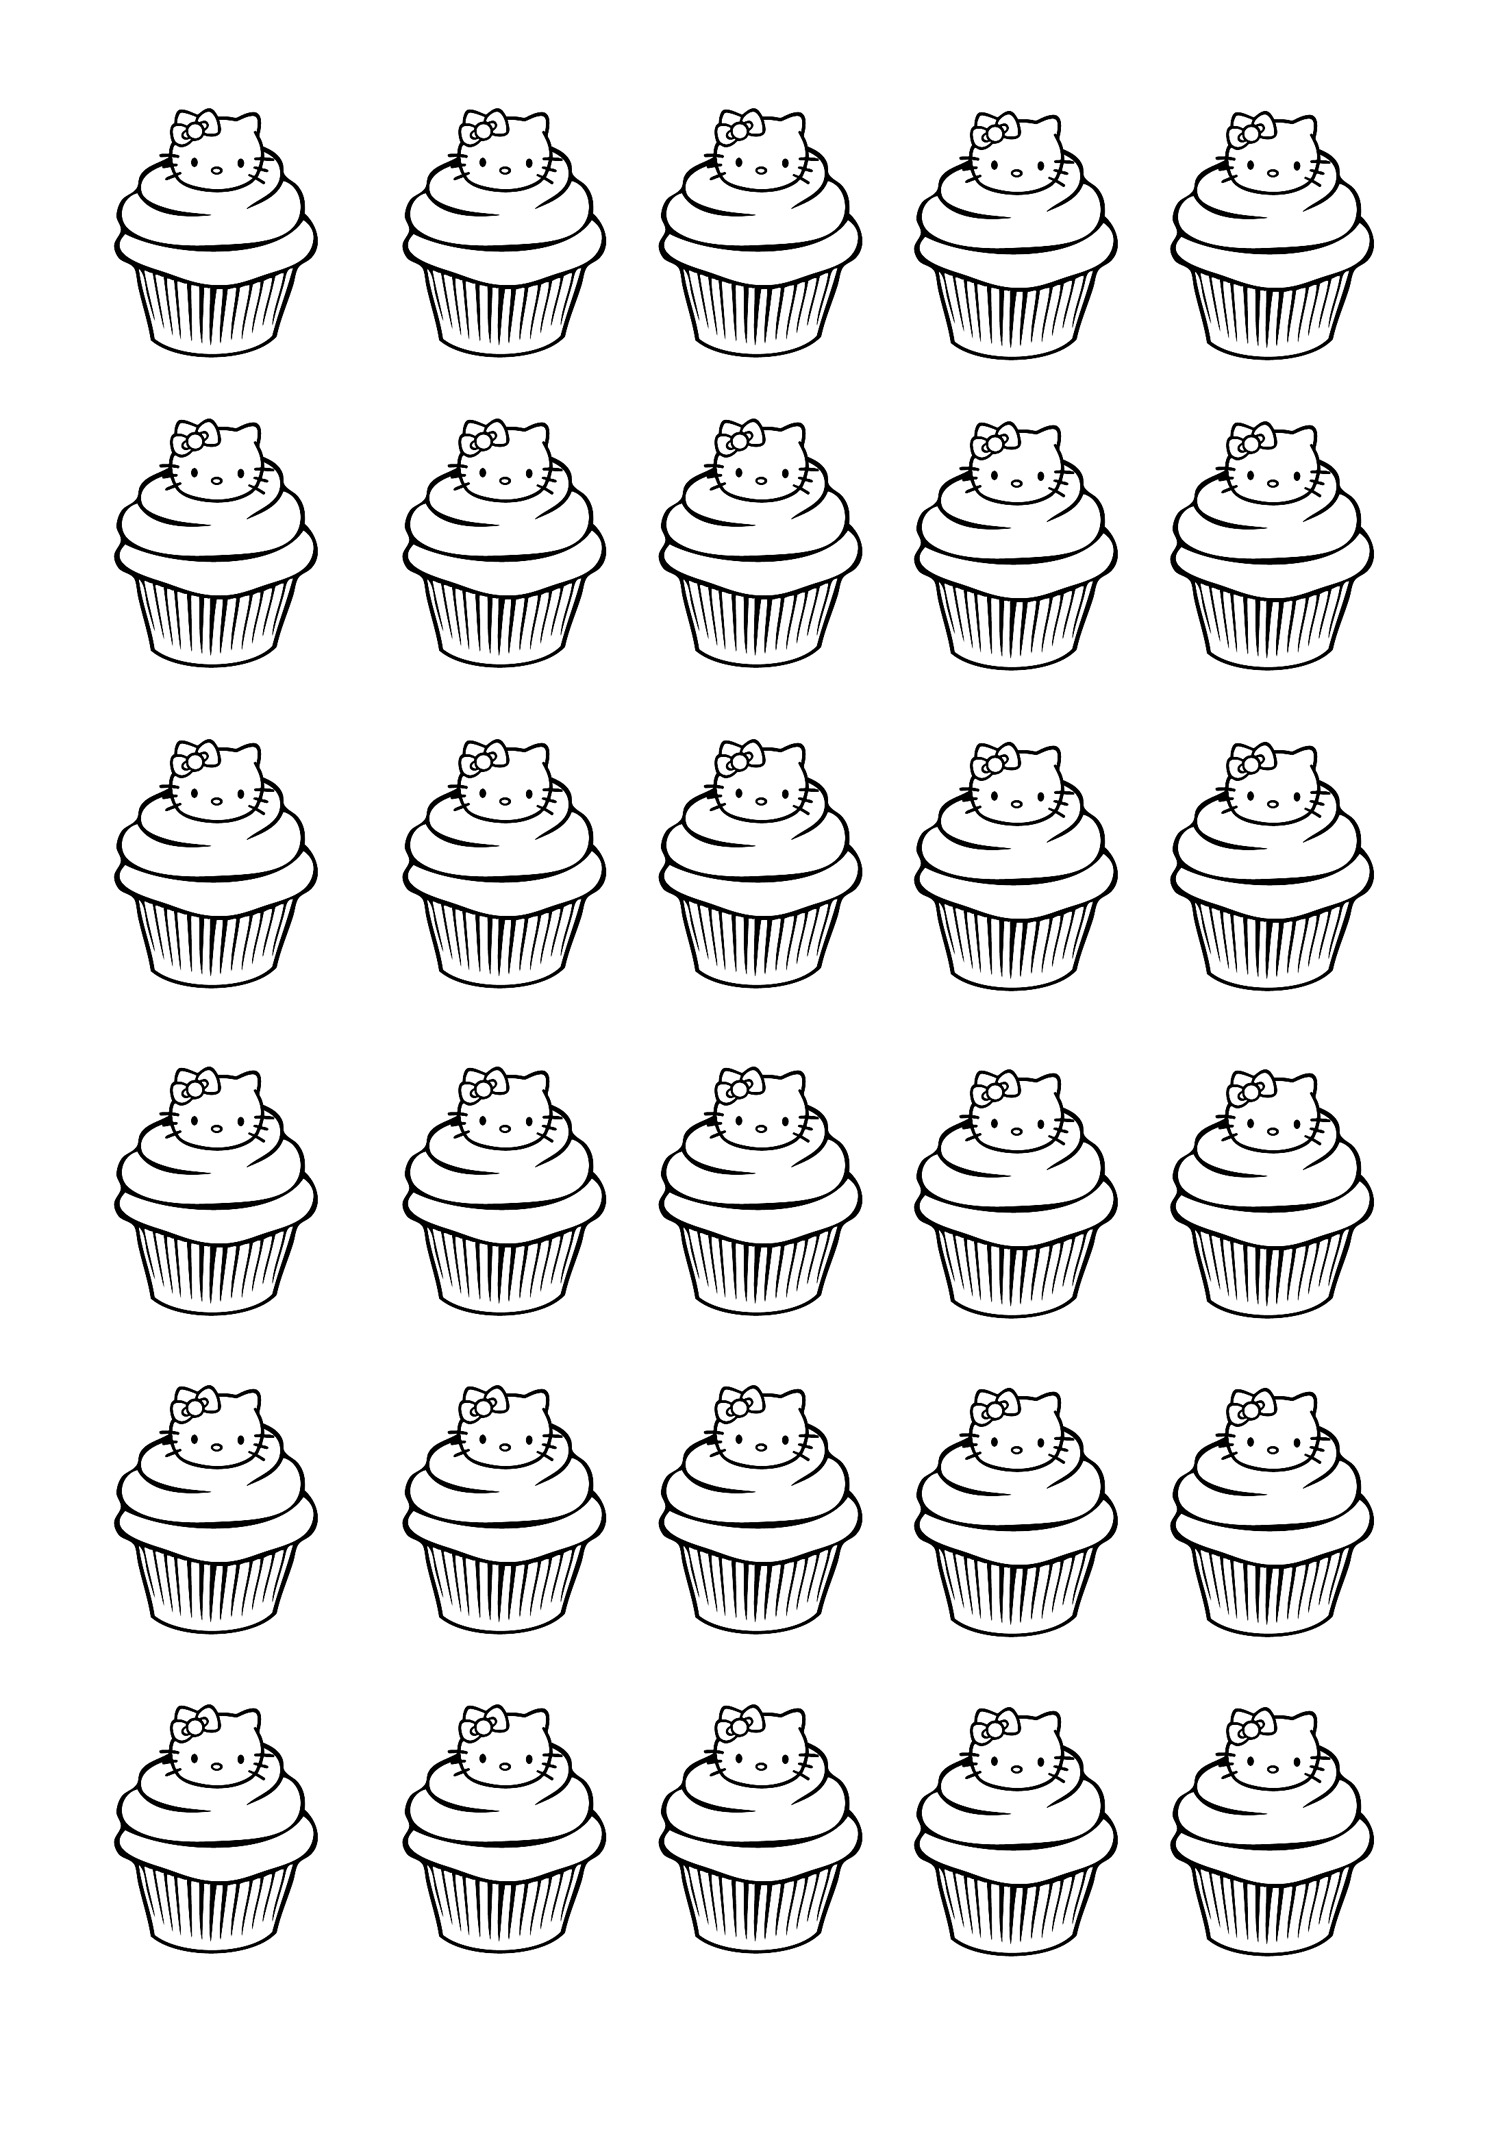 Cup cakes 76481